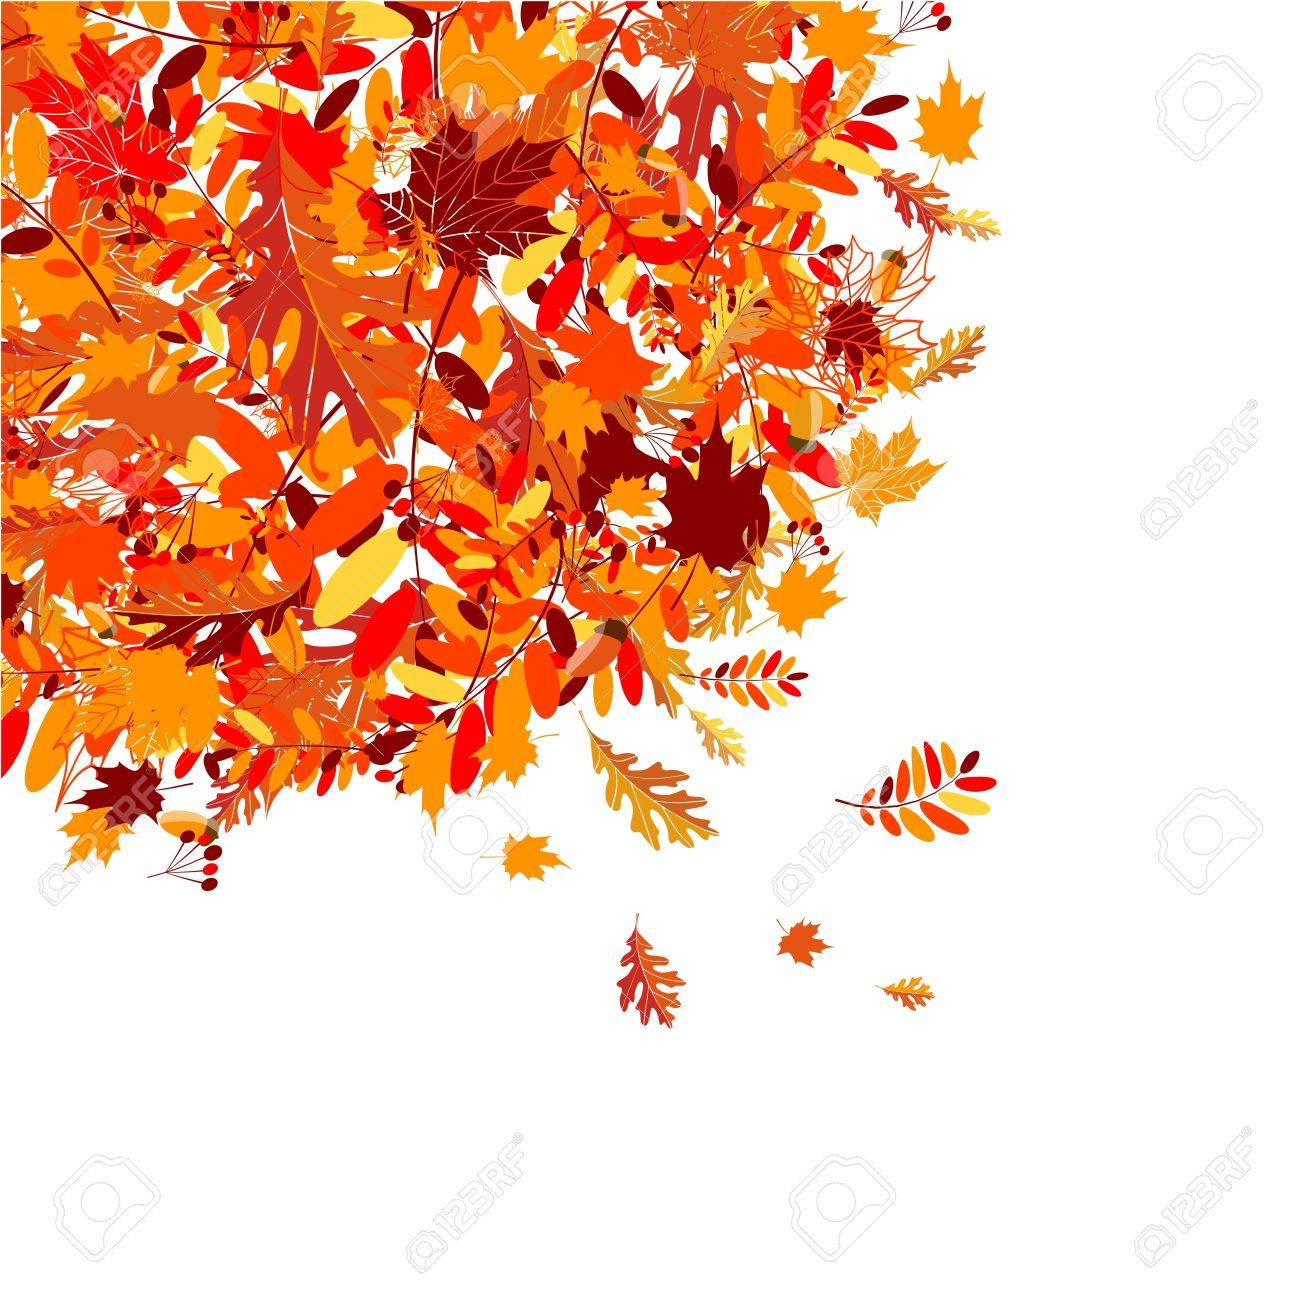 Autumn leaves background for your design Stock Vector - 7770183